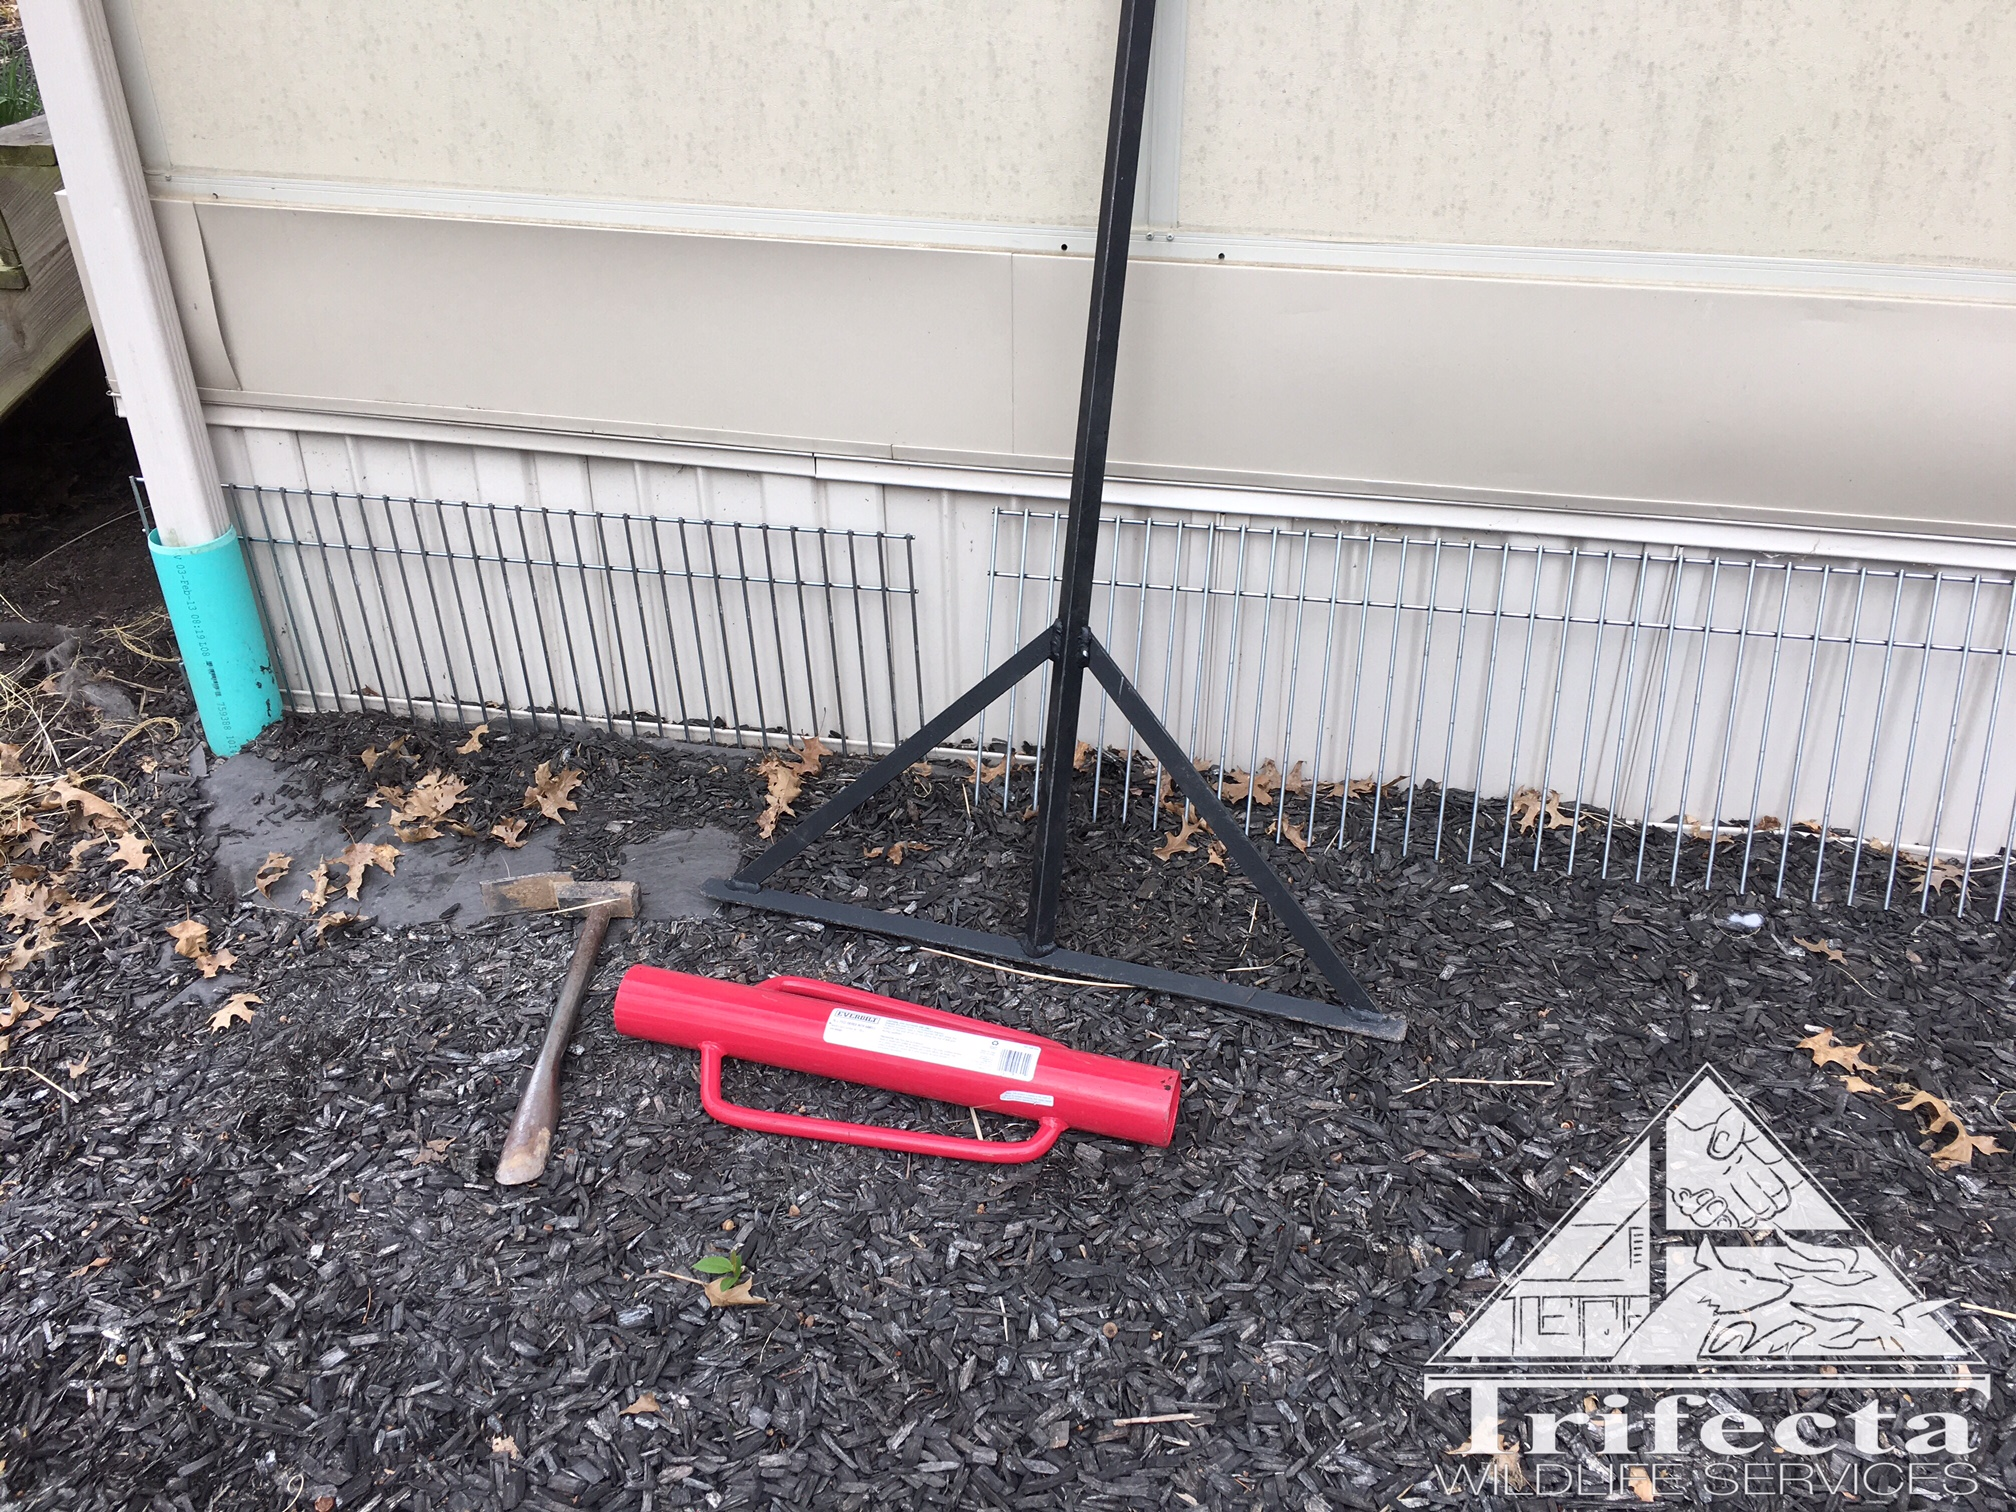 Dig Defence product and installation tools